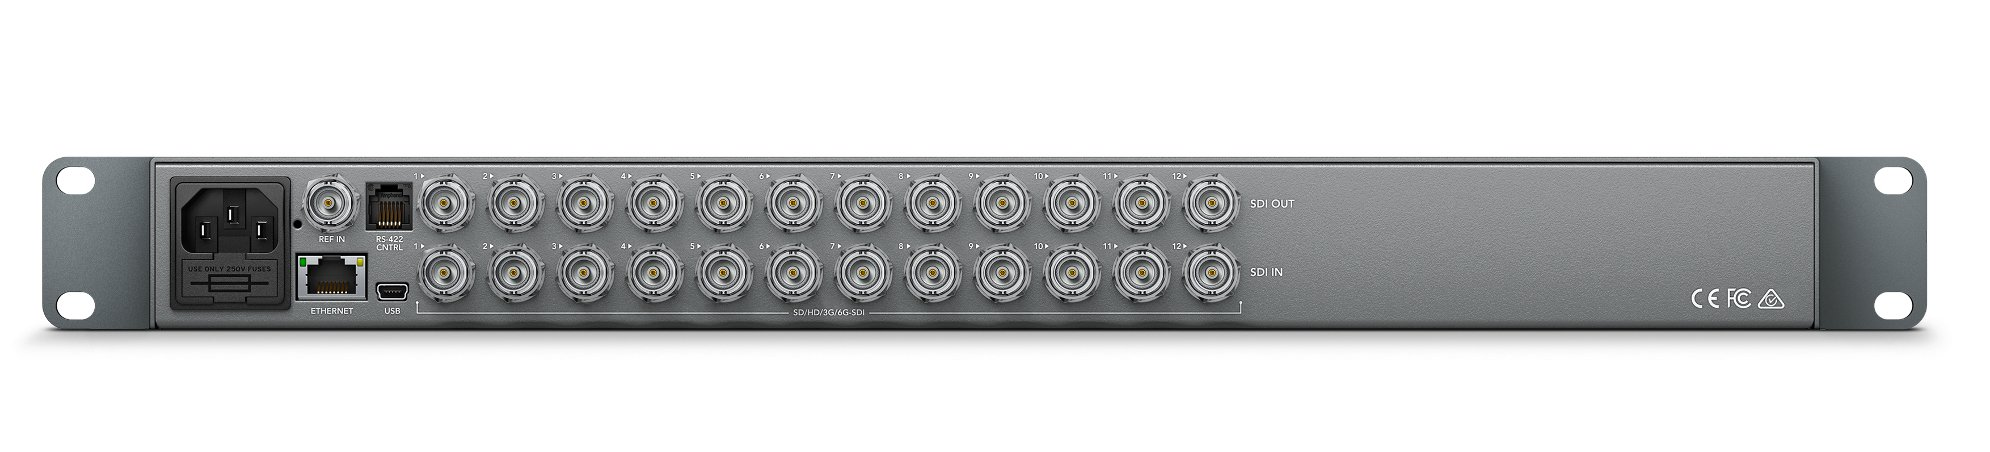 Blackmagic Design Vhubsmtcs6g1212 Routing Switcher With Frame Syncing Full Compass Systems